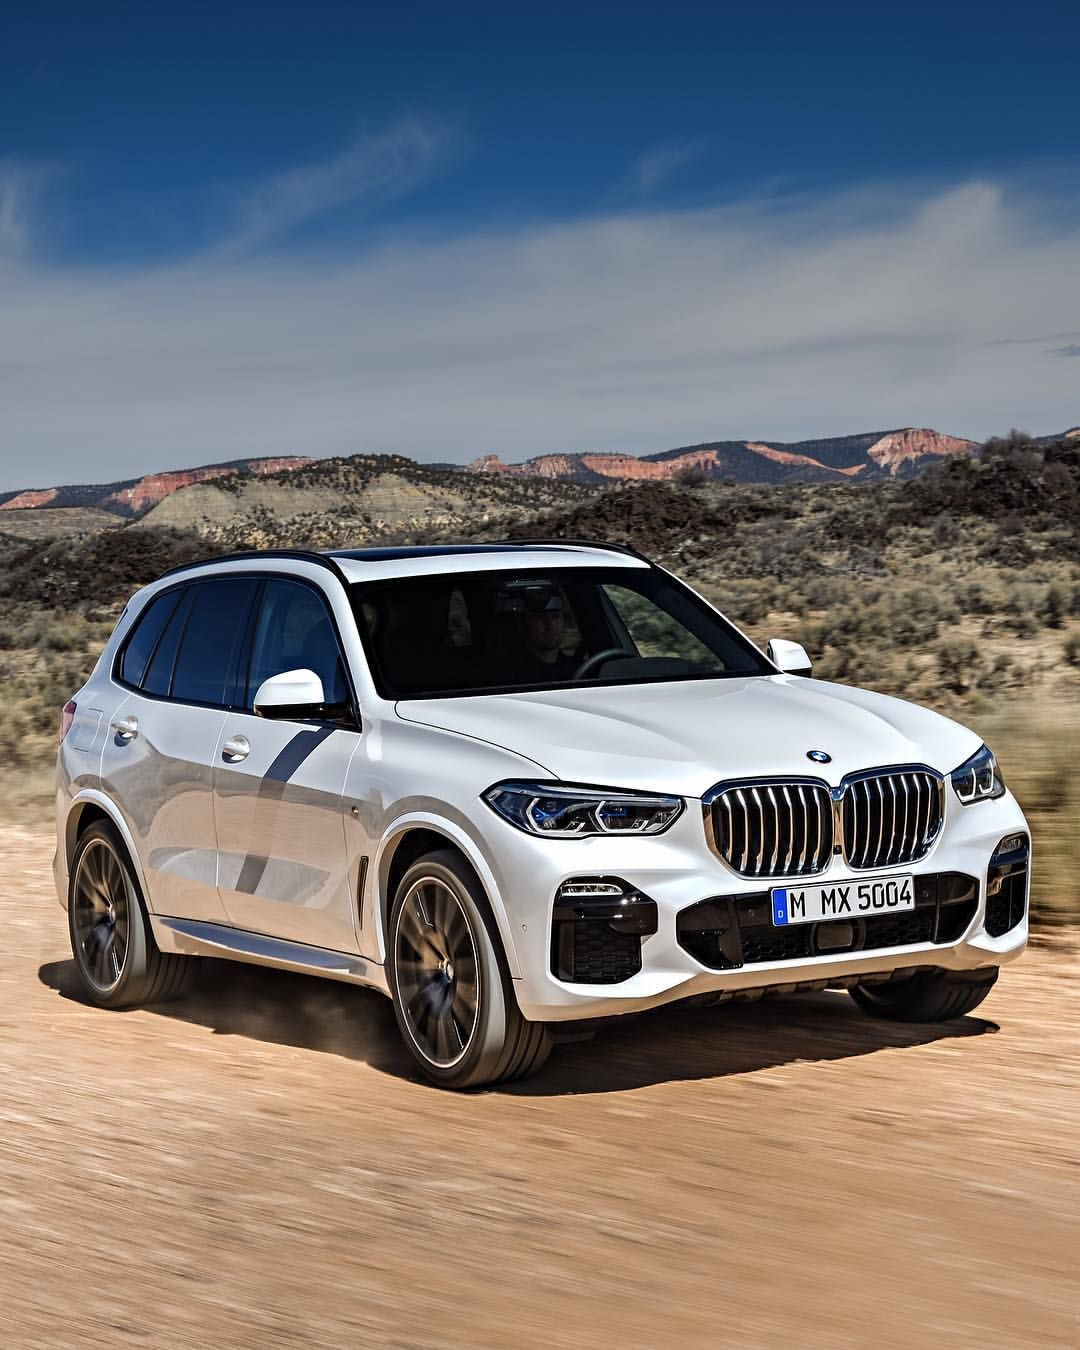 The All-new 4th Generation 2019 BMW X5 @motortrend On